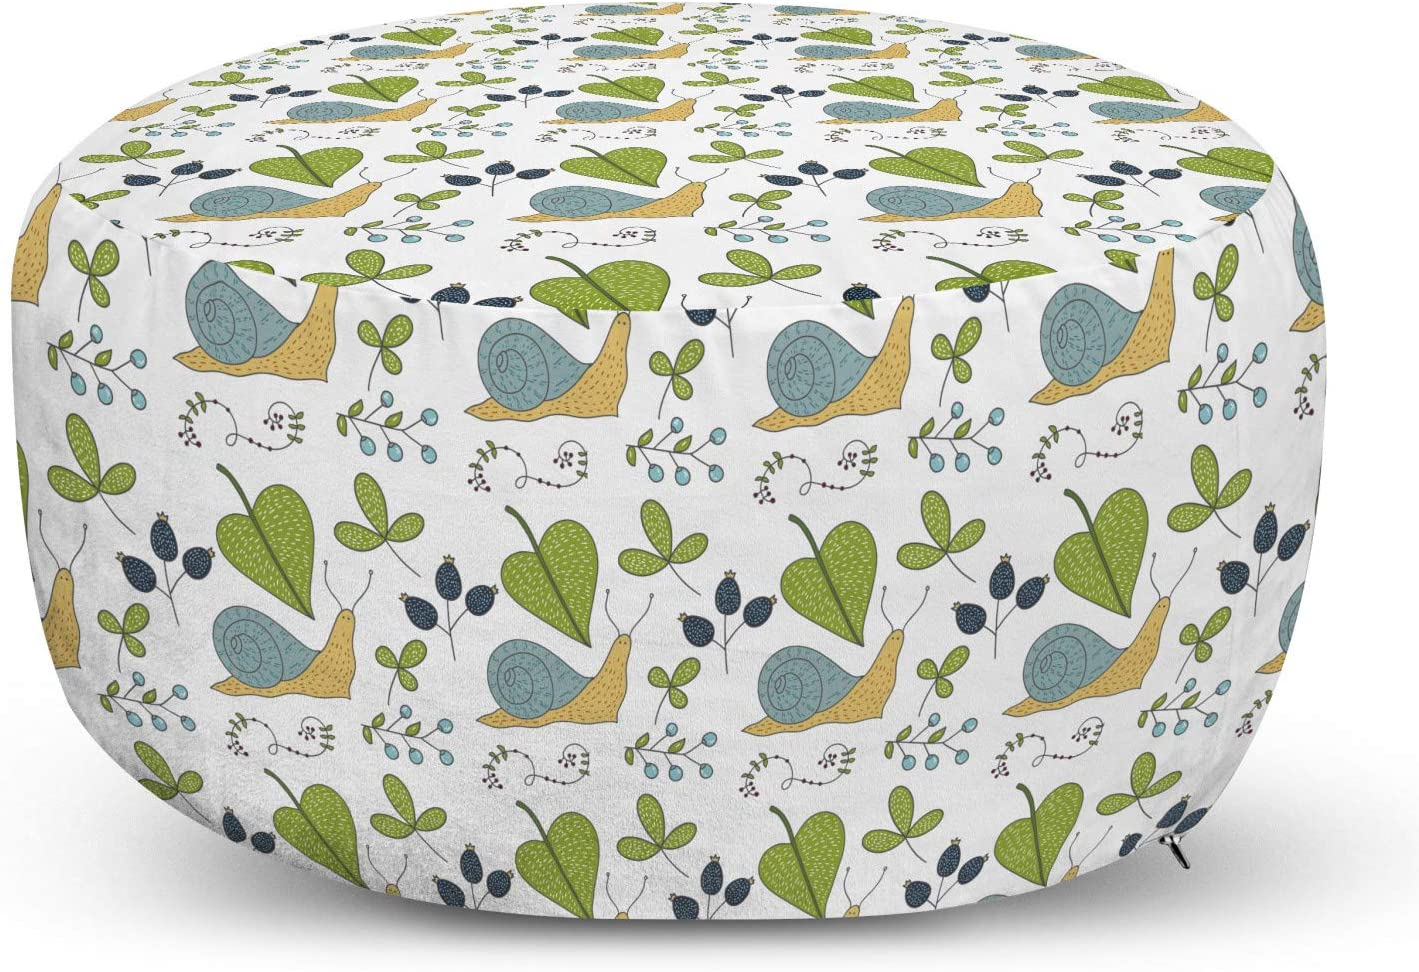 Ambesonne Snails Ottoman Regular store Quality inspection Pouf Botanical Concept S of Leaves and